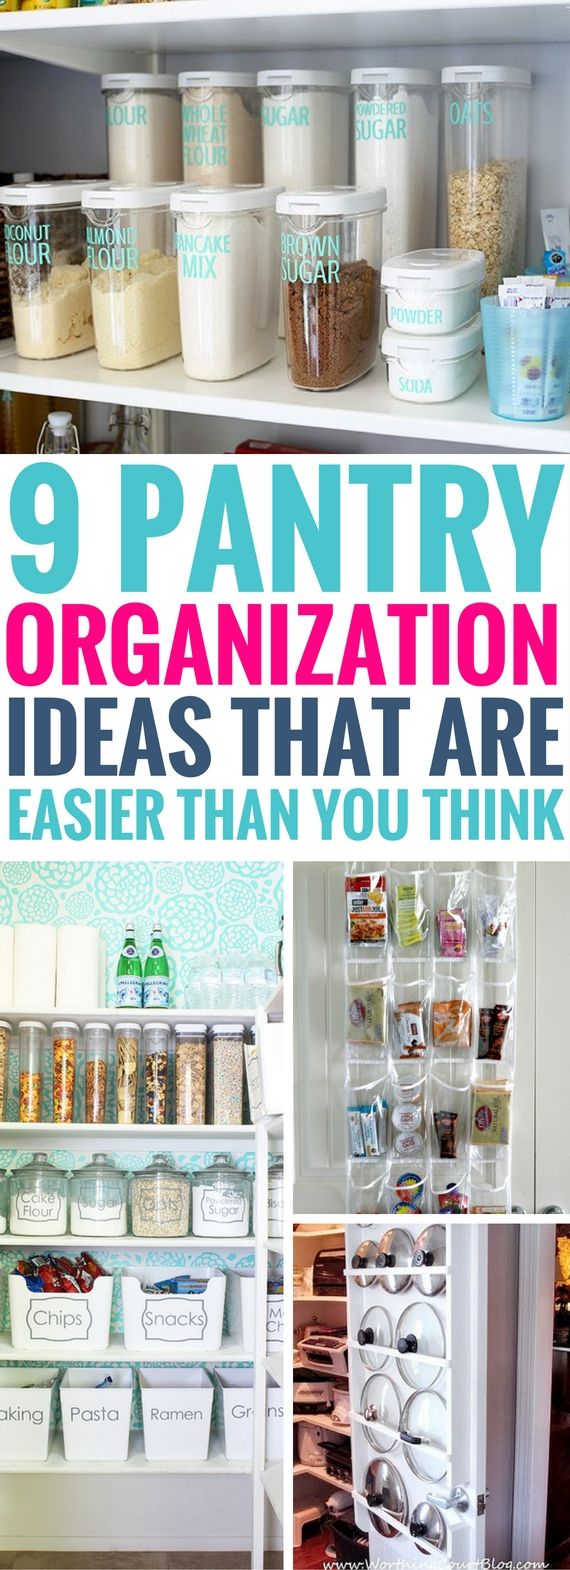 10 Pantry Organization Ideas That Are Easier Than You Think | Pantry ...